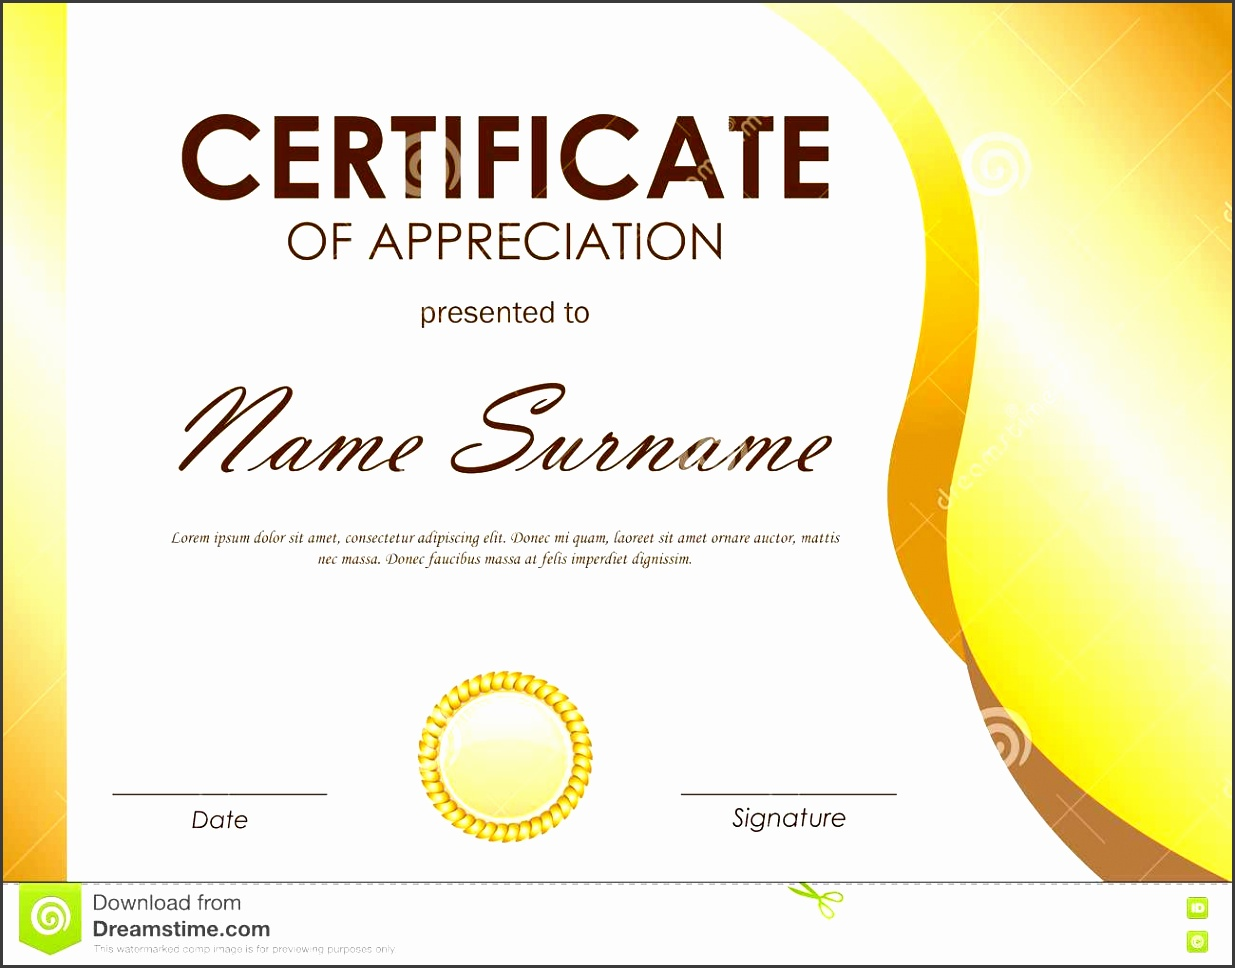 8 easy to use certificate of appreciation template word certificate of appreciation template project schedule sample certificate appreciation template gold wavy curved light background yelopaper Images